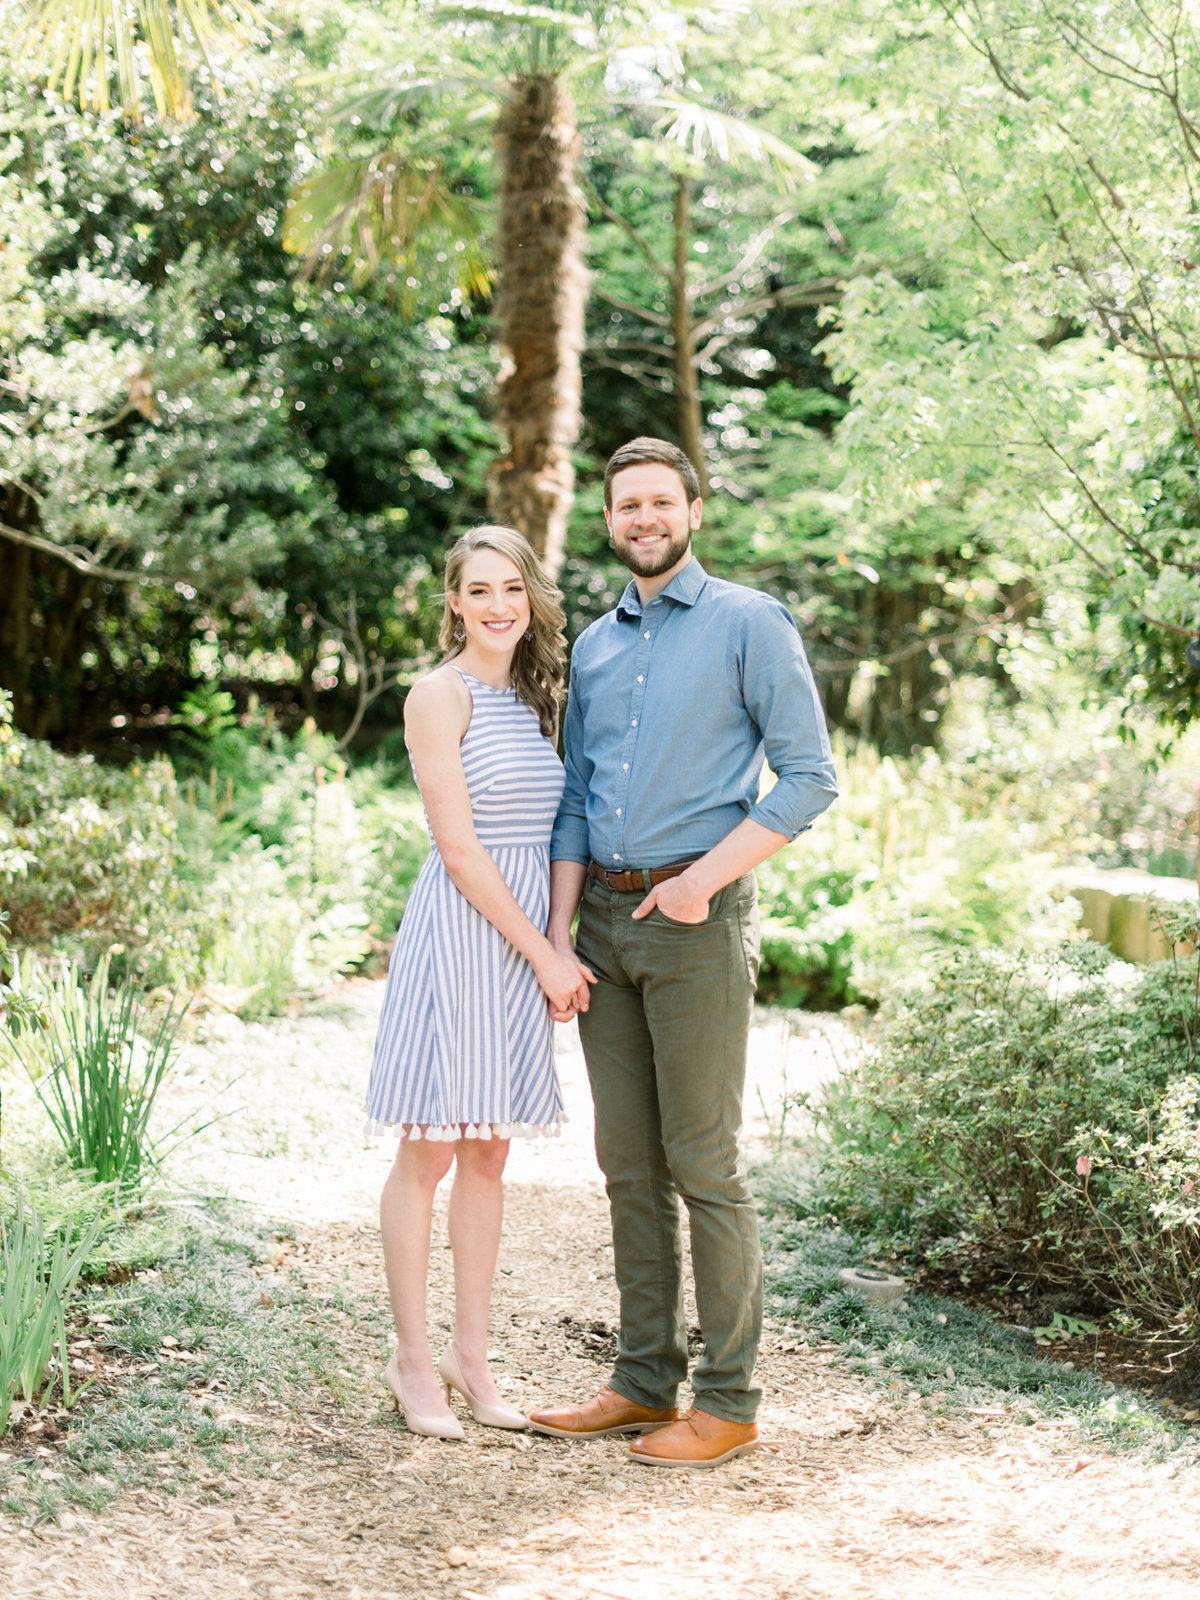 Courtney Hanson Photography - Dallas Spring Engagement Photos at Dallas Arboretum-2564